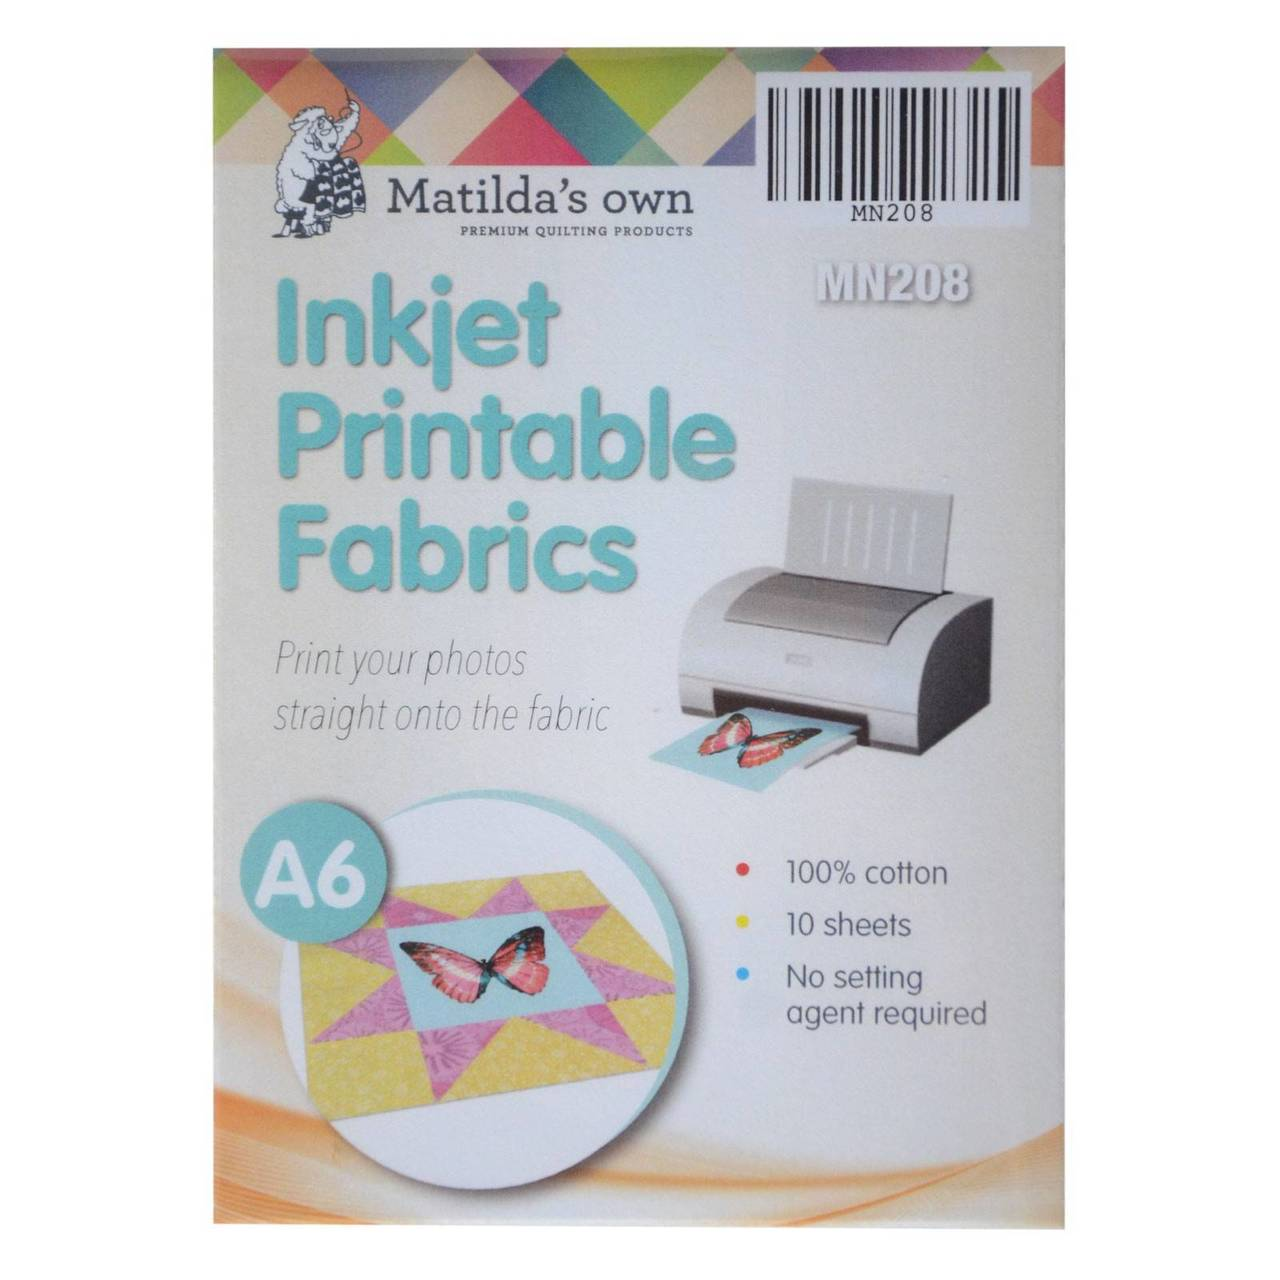 photograph relating to Ink Jet Printable Fabric referred to as Inkjet Printable Cloth A6 10 Sheets 105x150mm Matildas Personalized